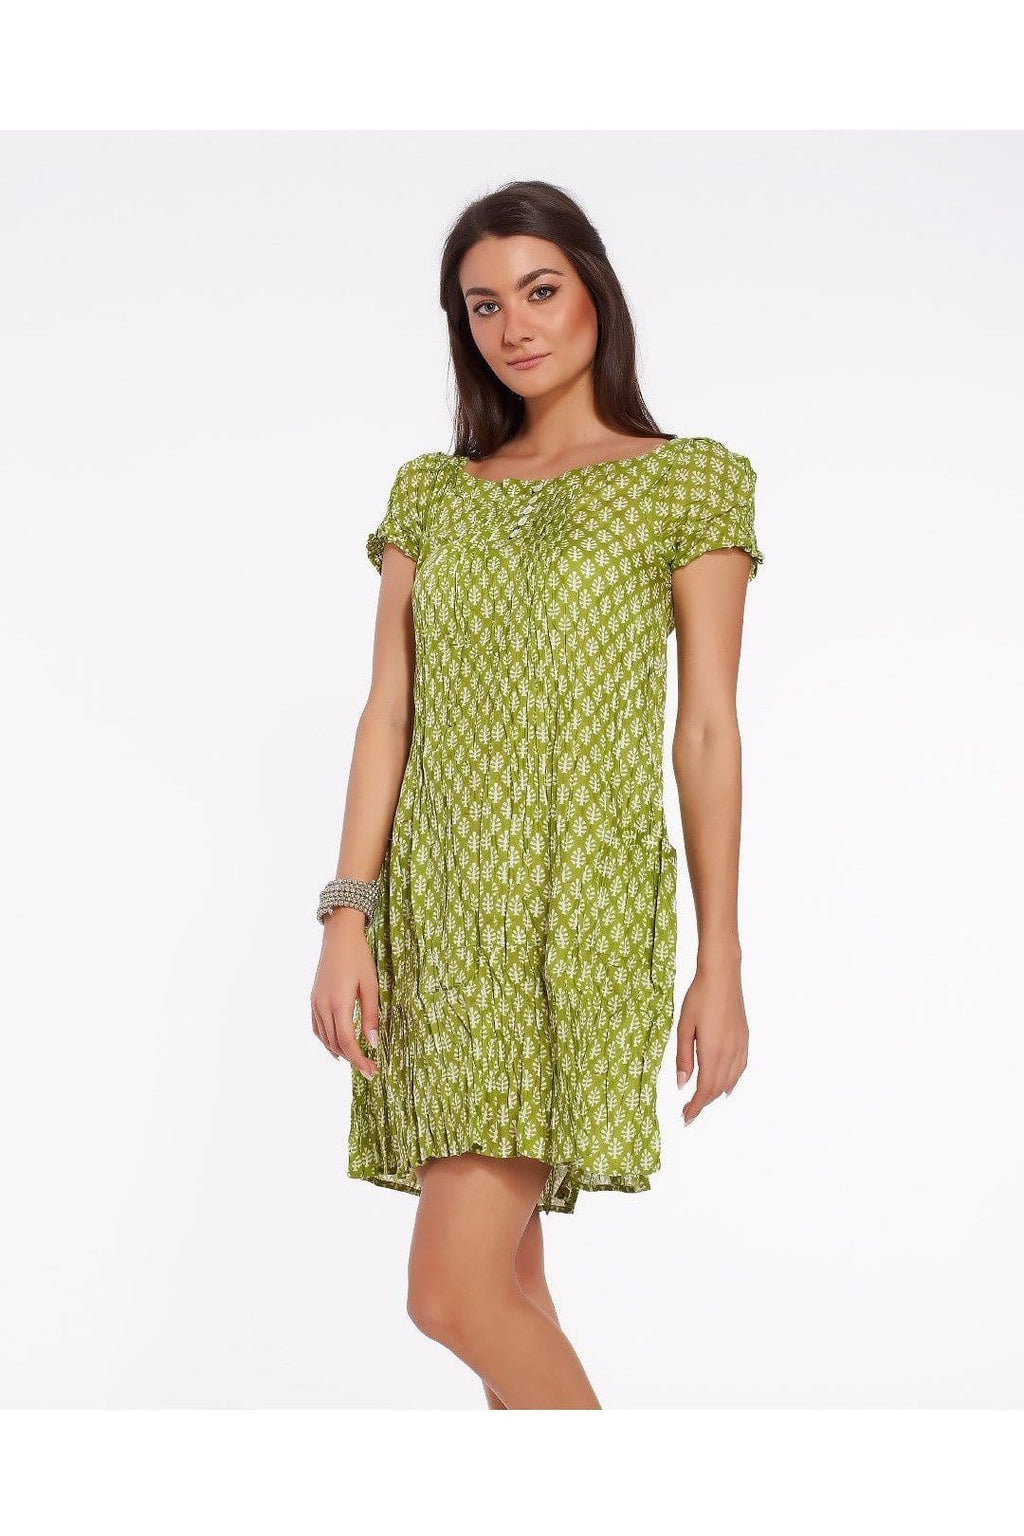 Short summer dress for women in light soft cotton, light green color with minimal design print - Himelhoch's